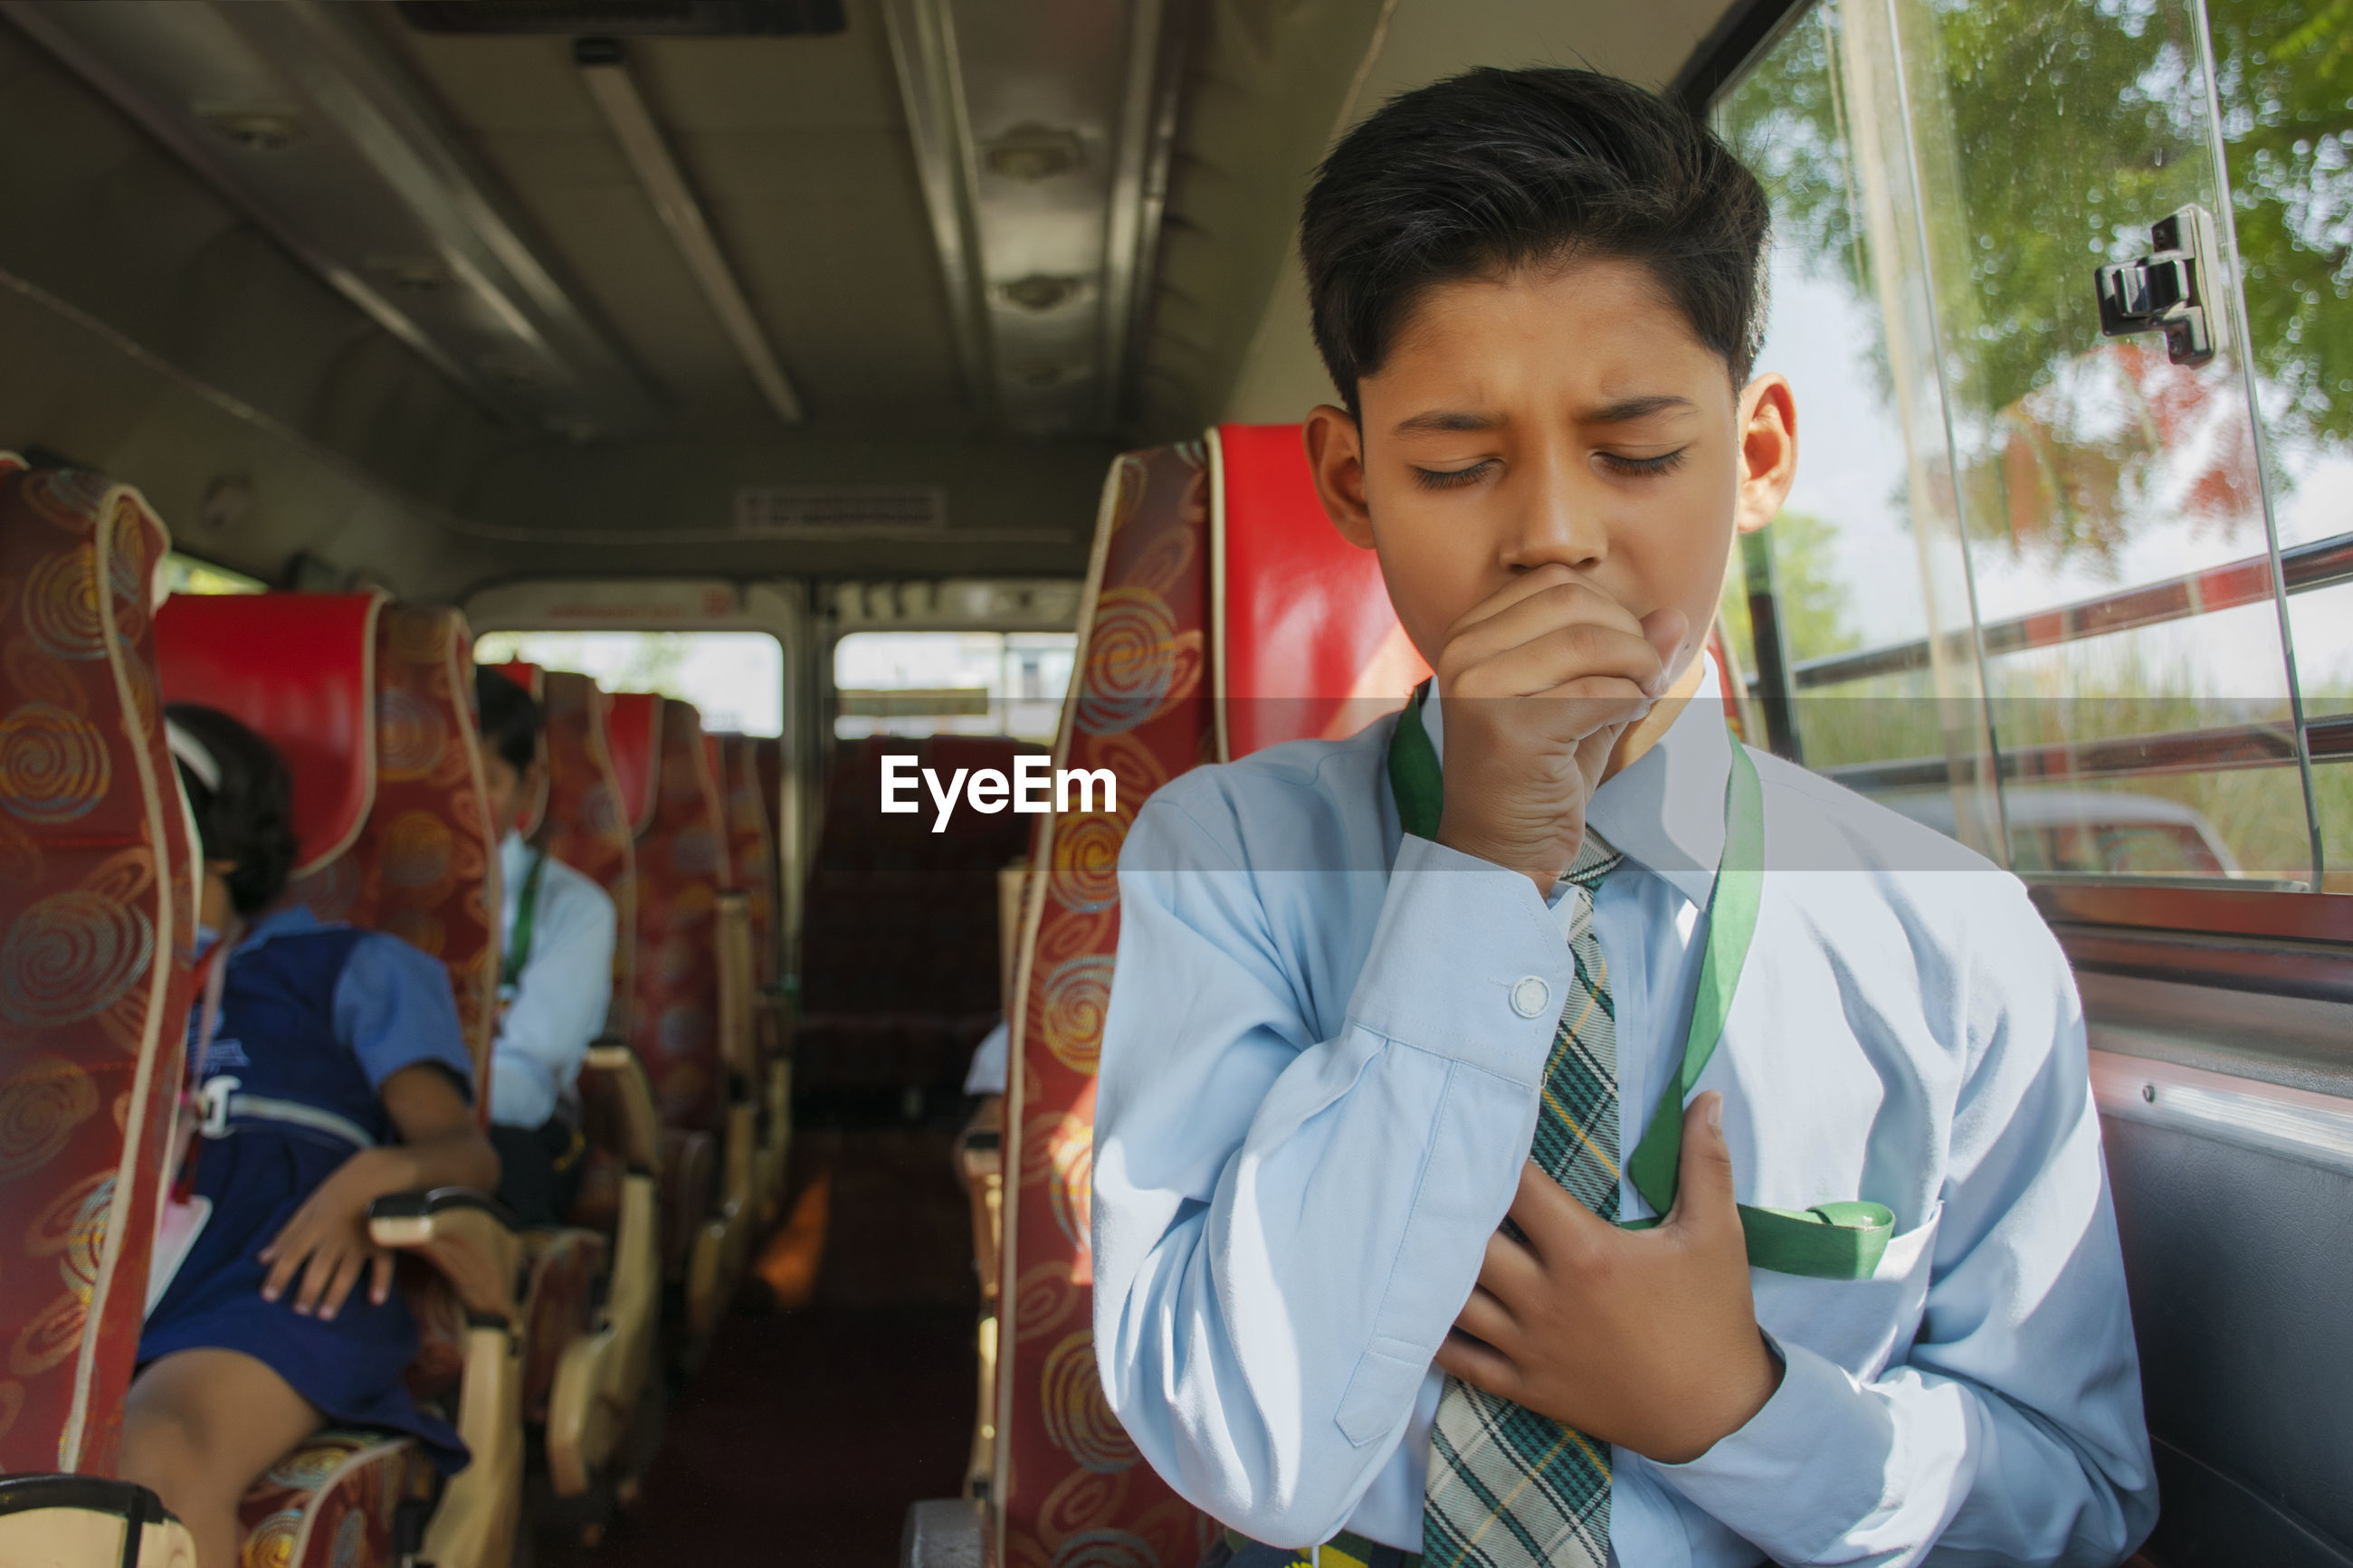 Indian boy coughing in school bus, air pollution, virus